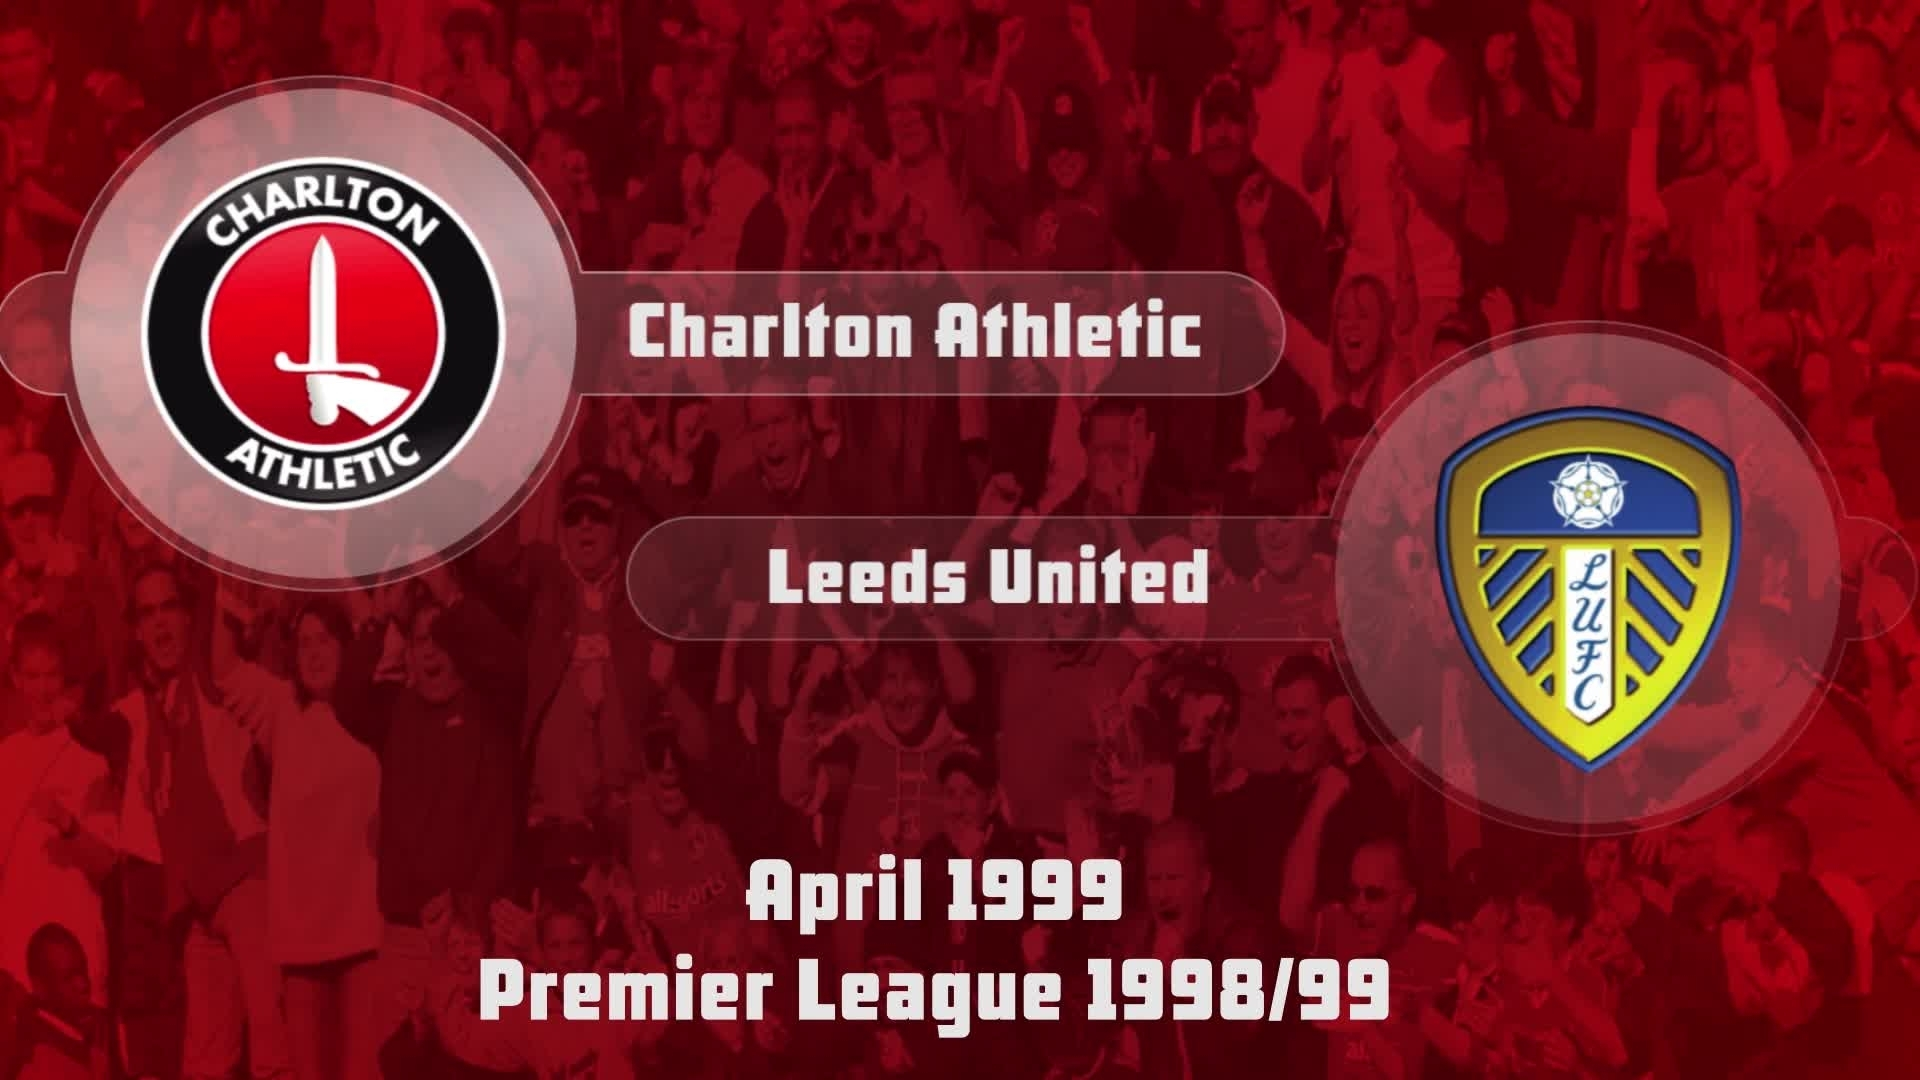 37 HIGHLIGHTS | Charlton 1 Leeds United 1 (April 1999)